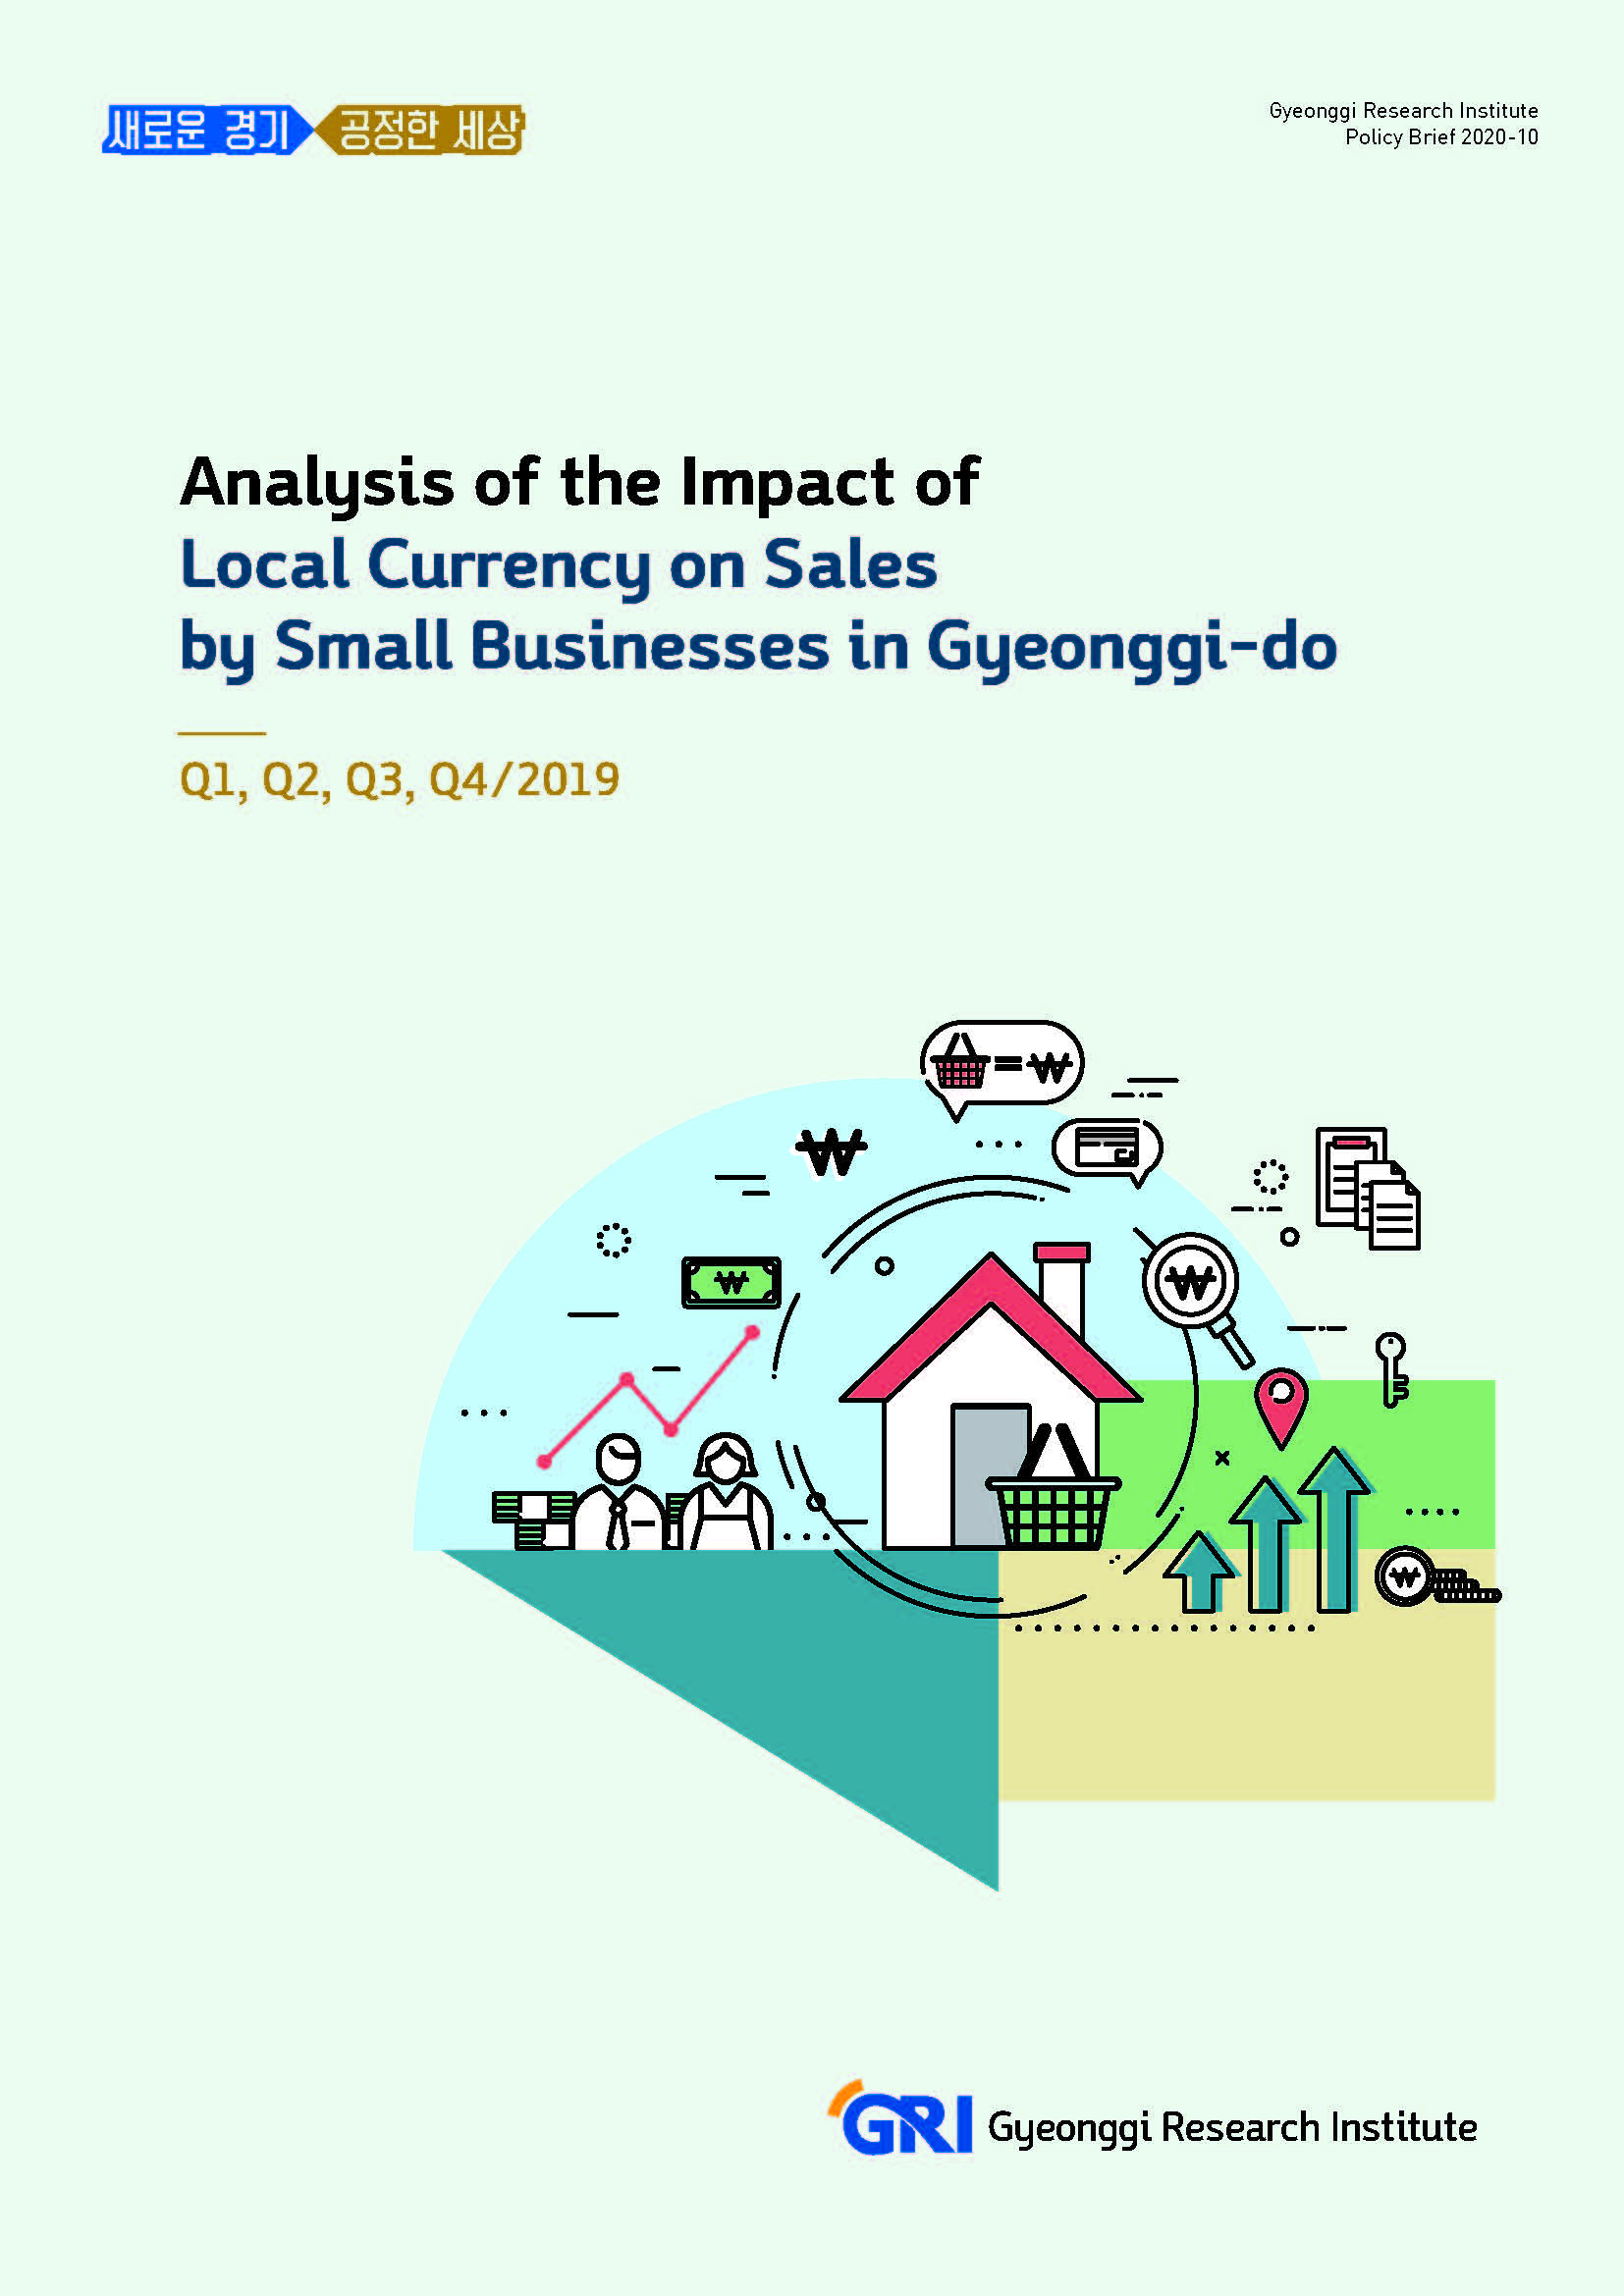 Analysis of the Impact of Local Currency on Sales by Small Businesses in Gyeonggi-do